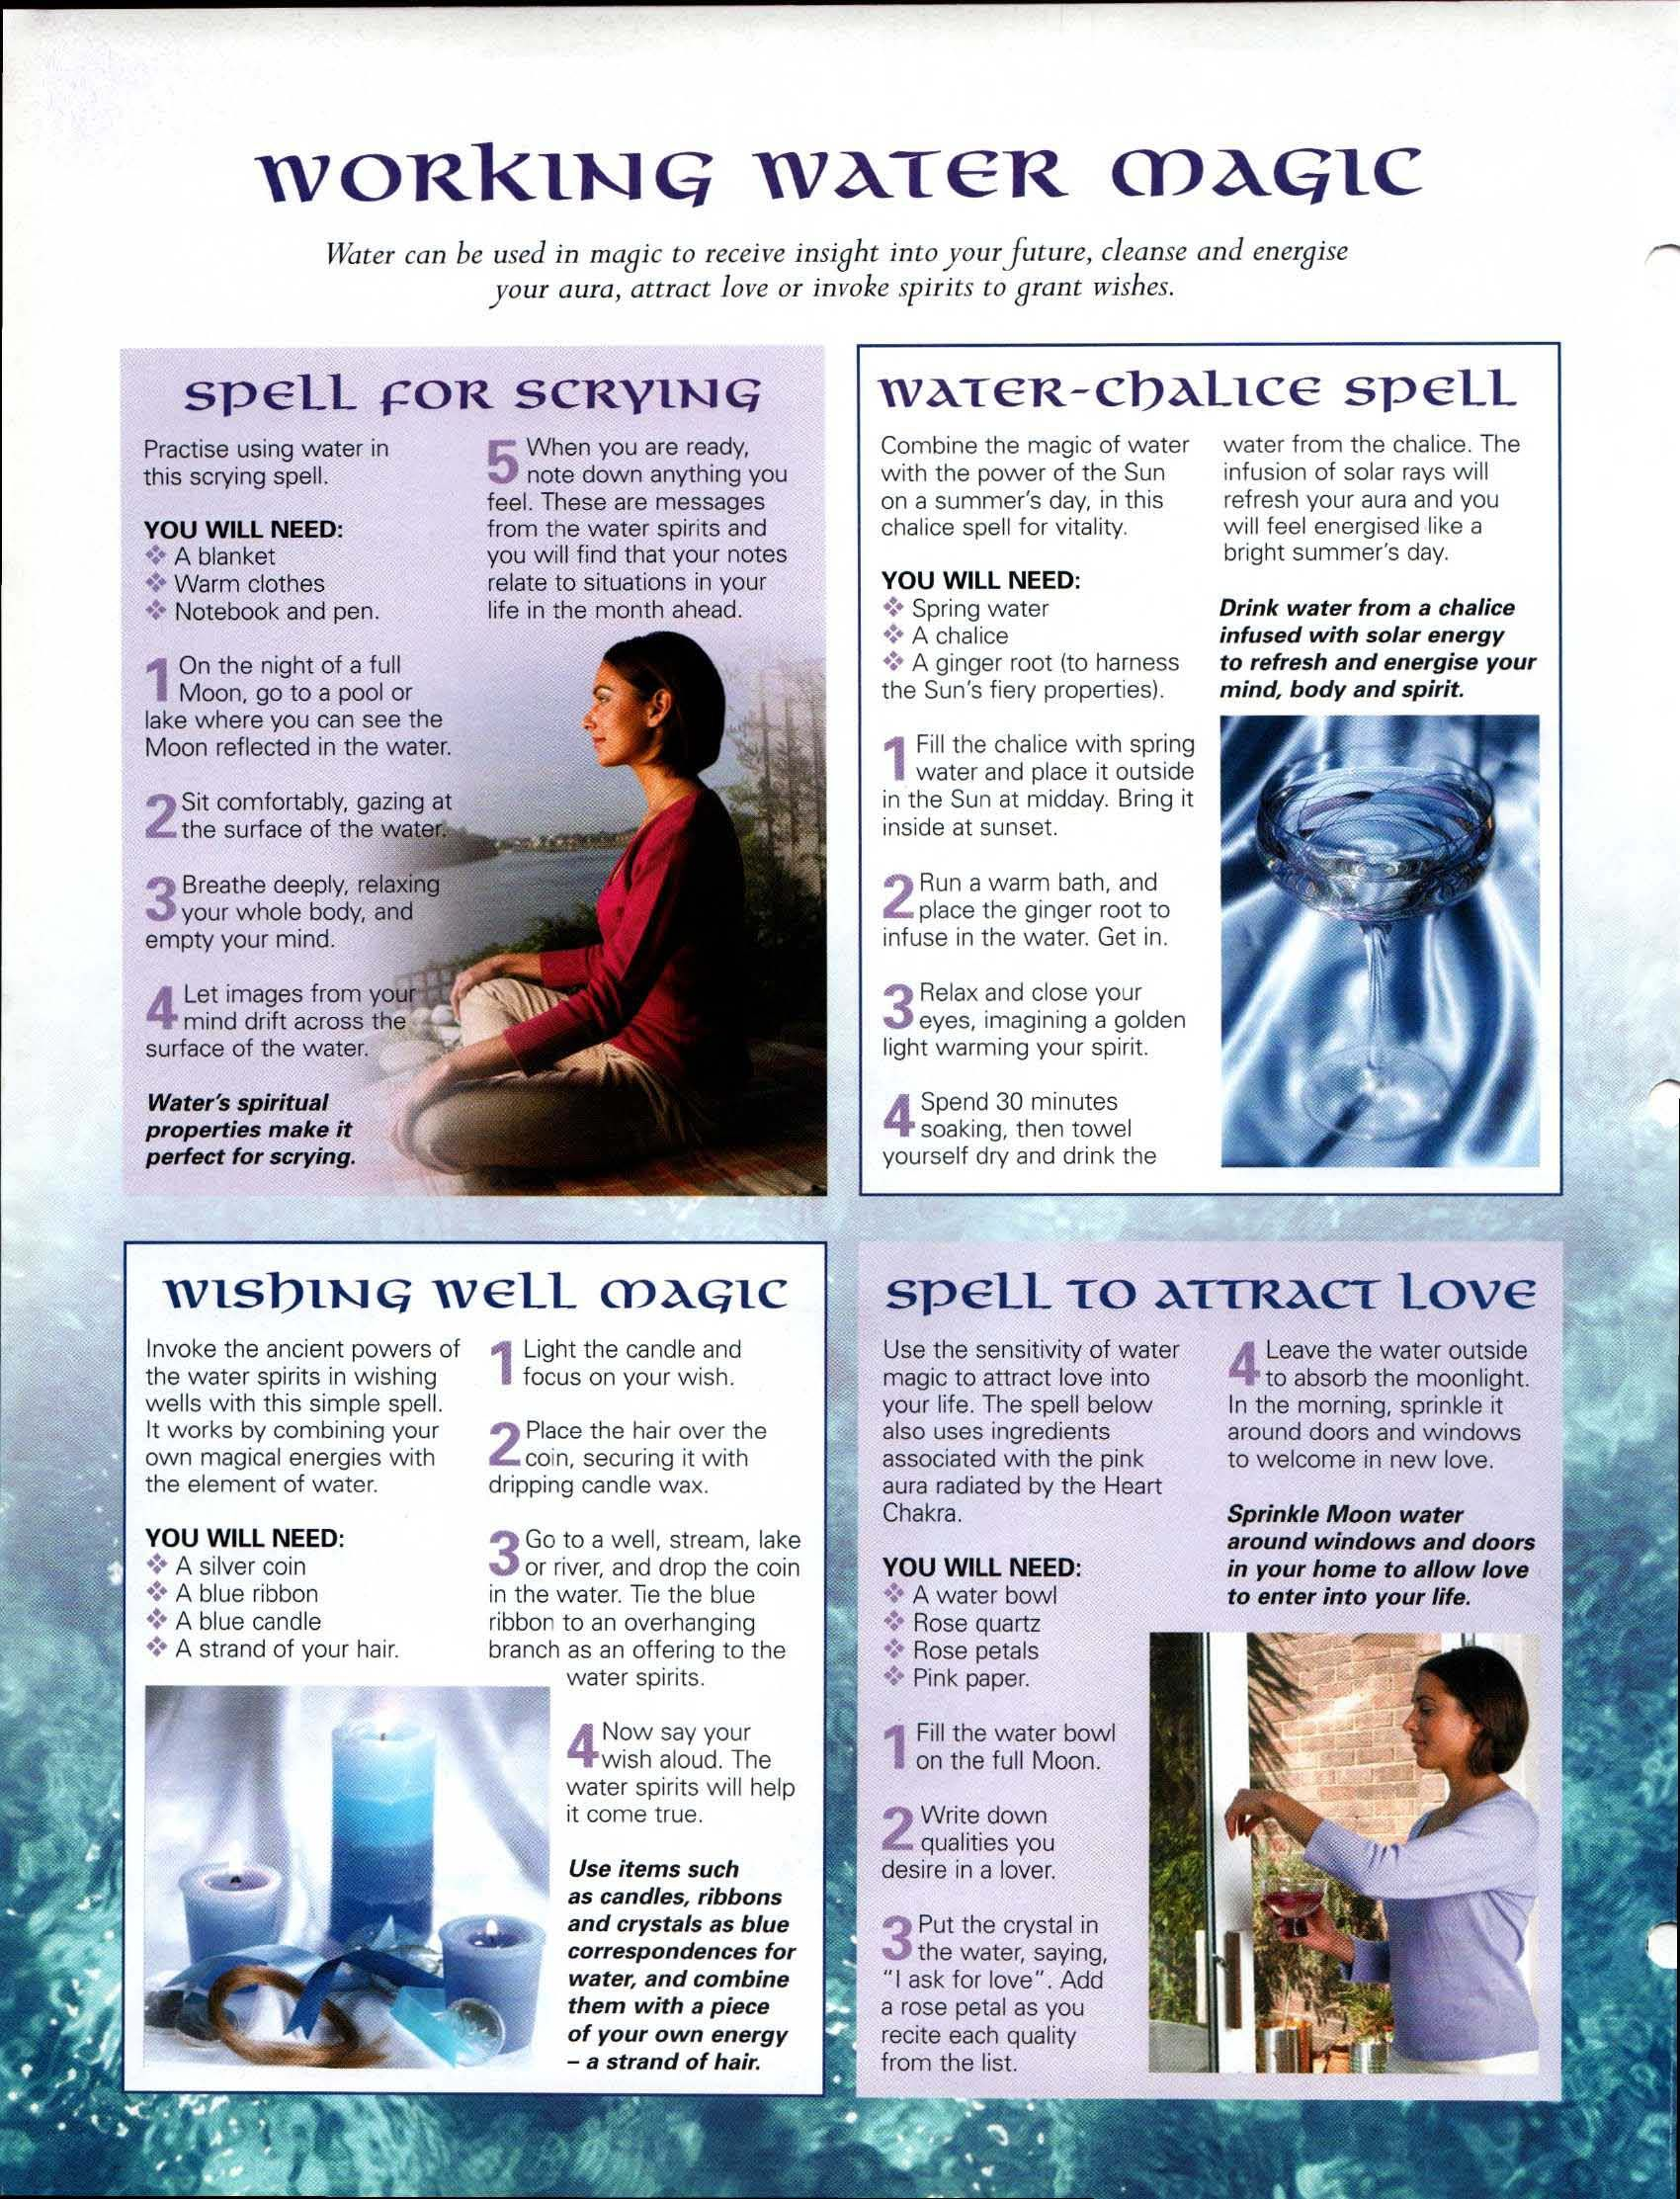 Working Water Magick